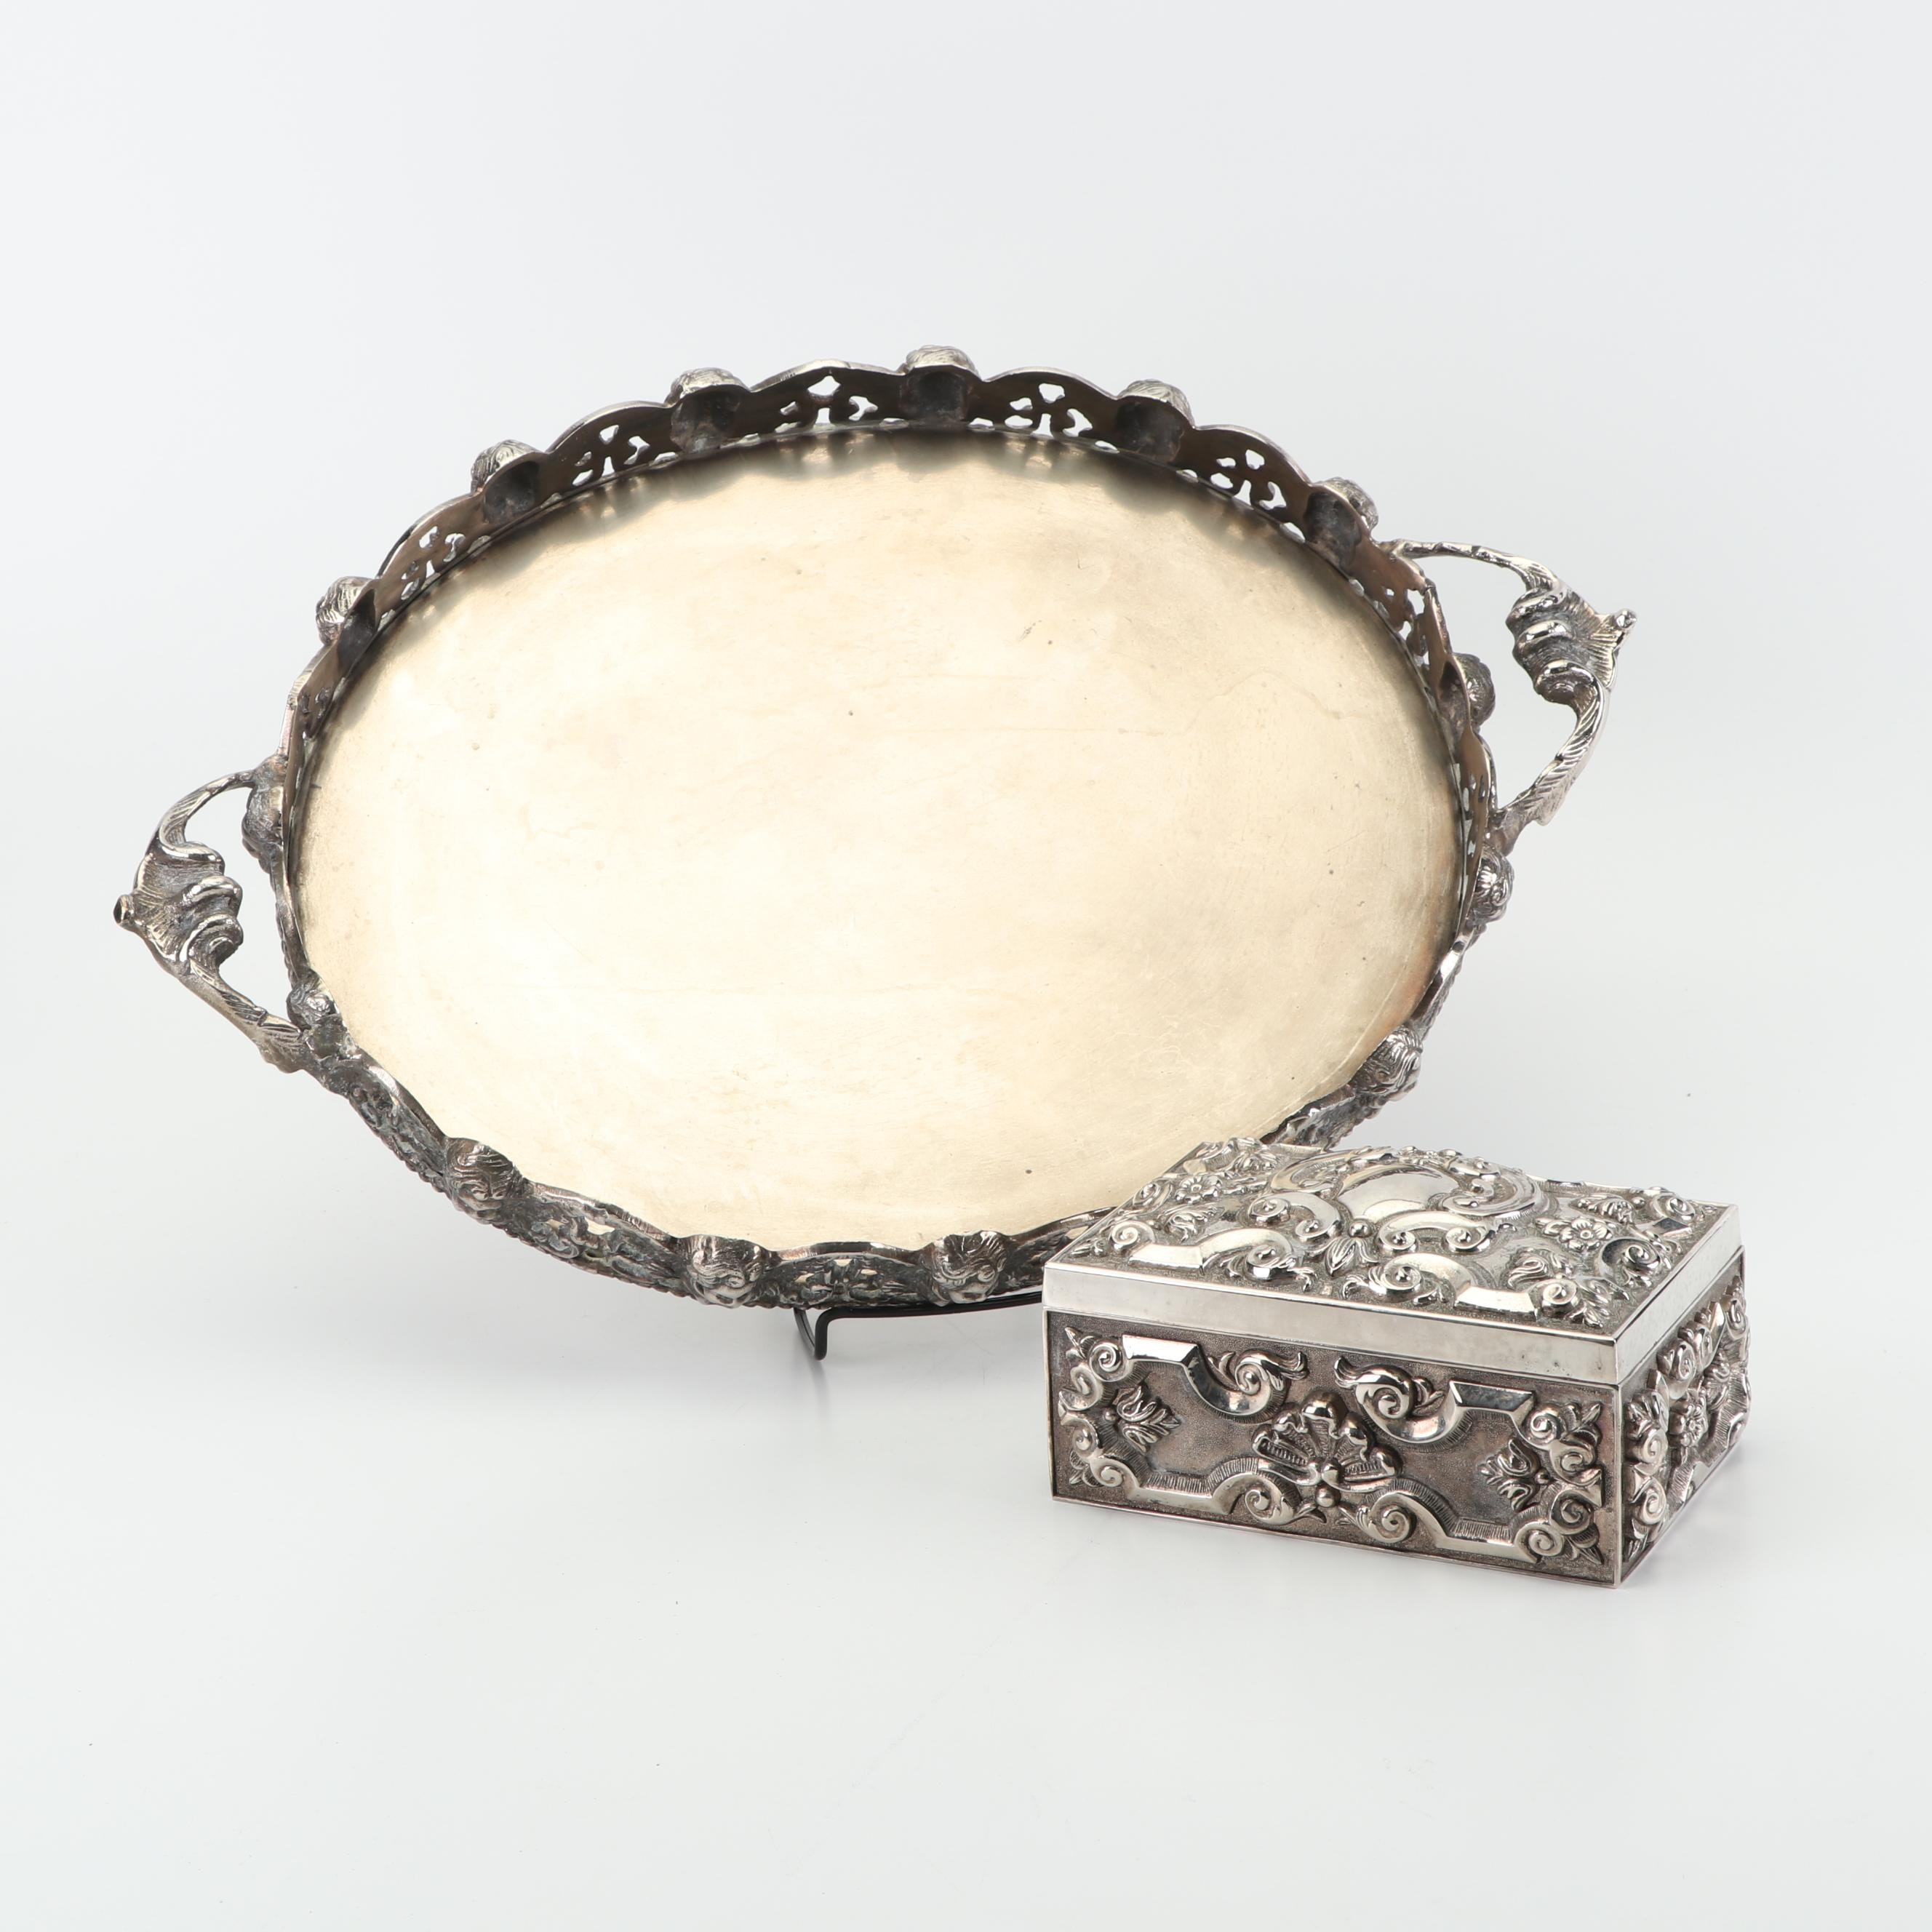 Godinger Silver Art Co. Jewelry Box with Silver Plate Angel Motif Tray